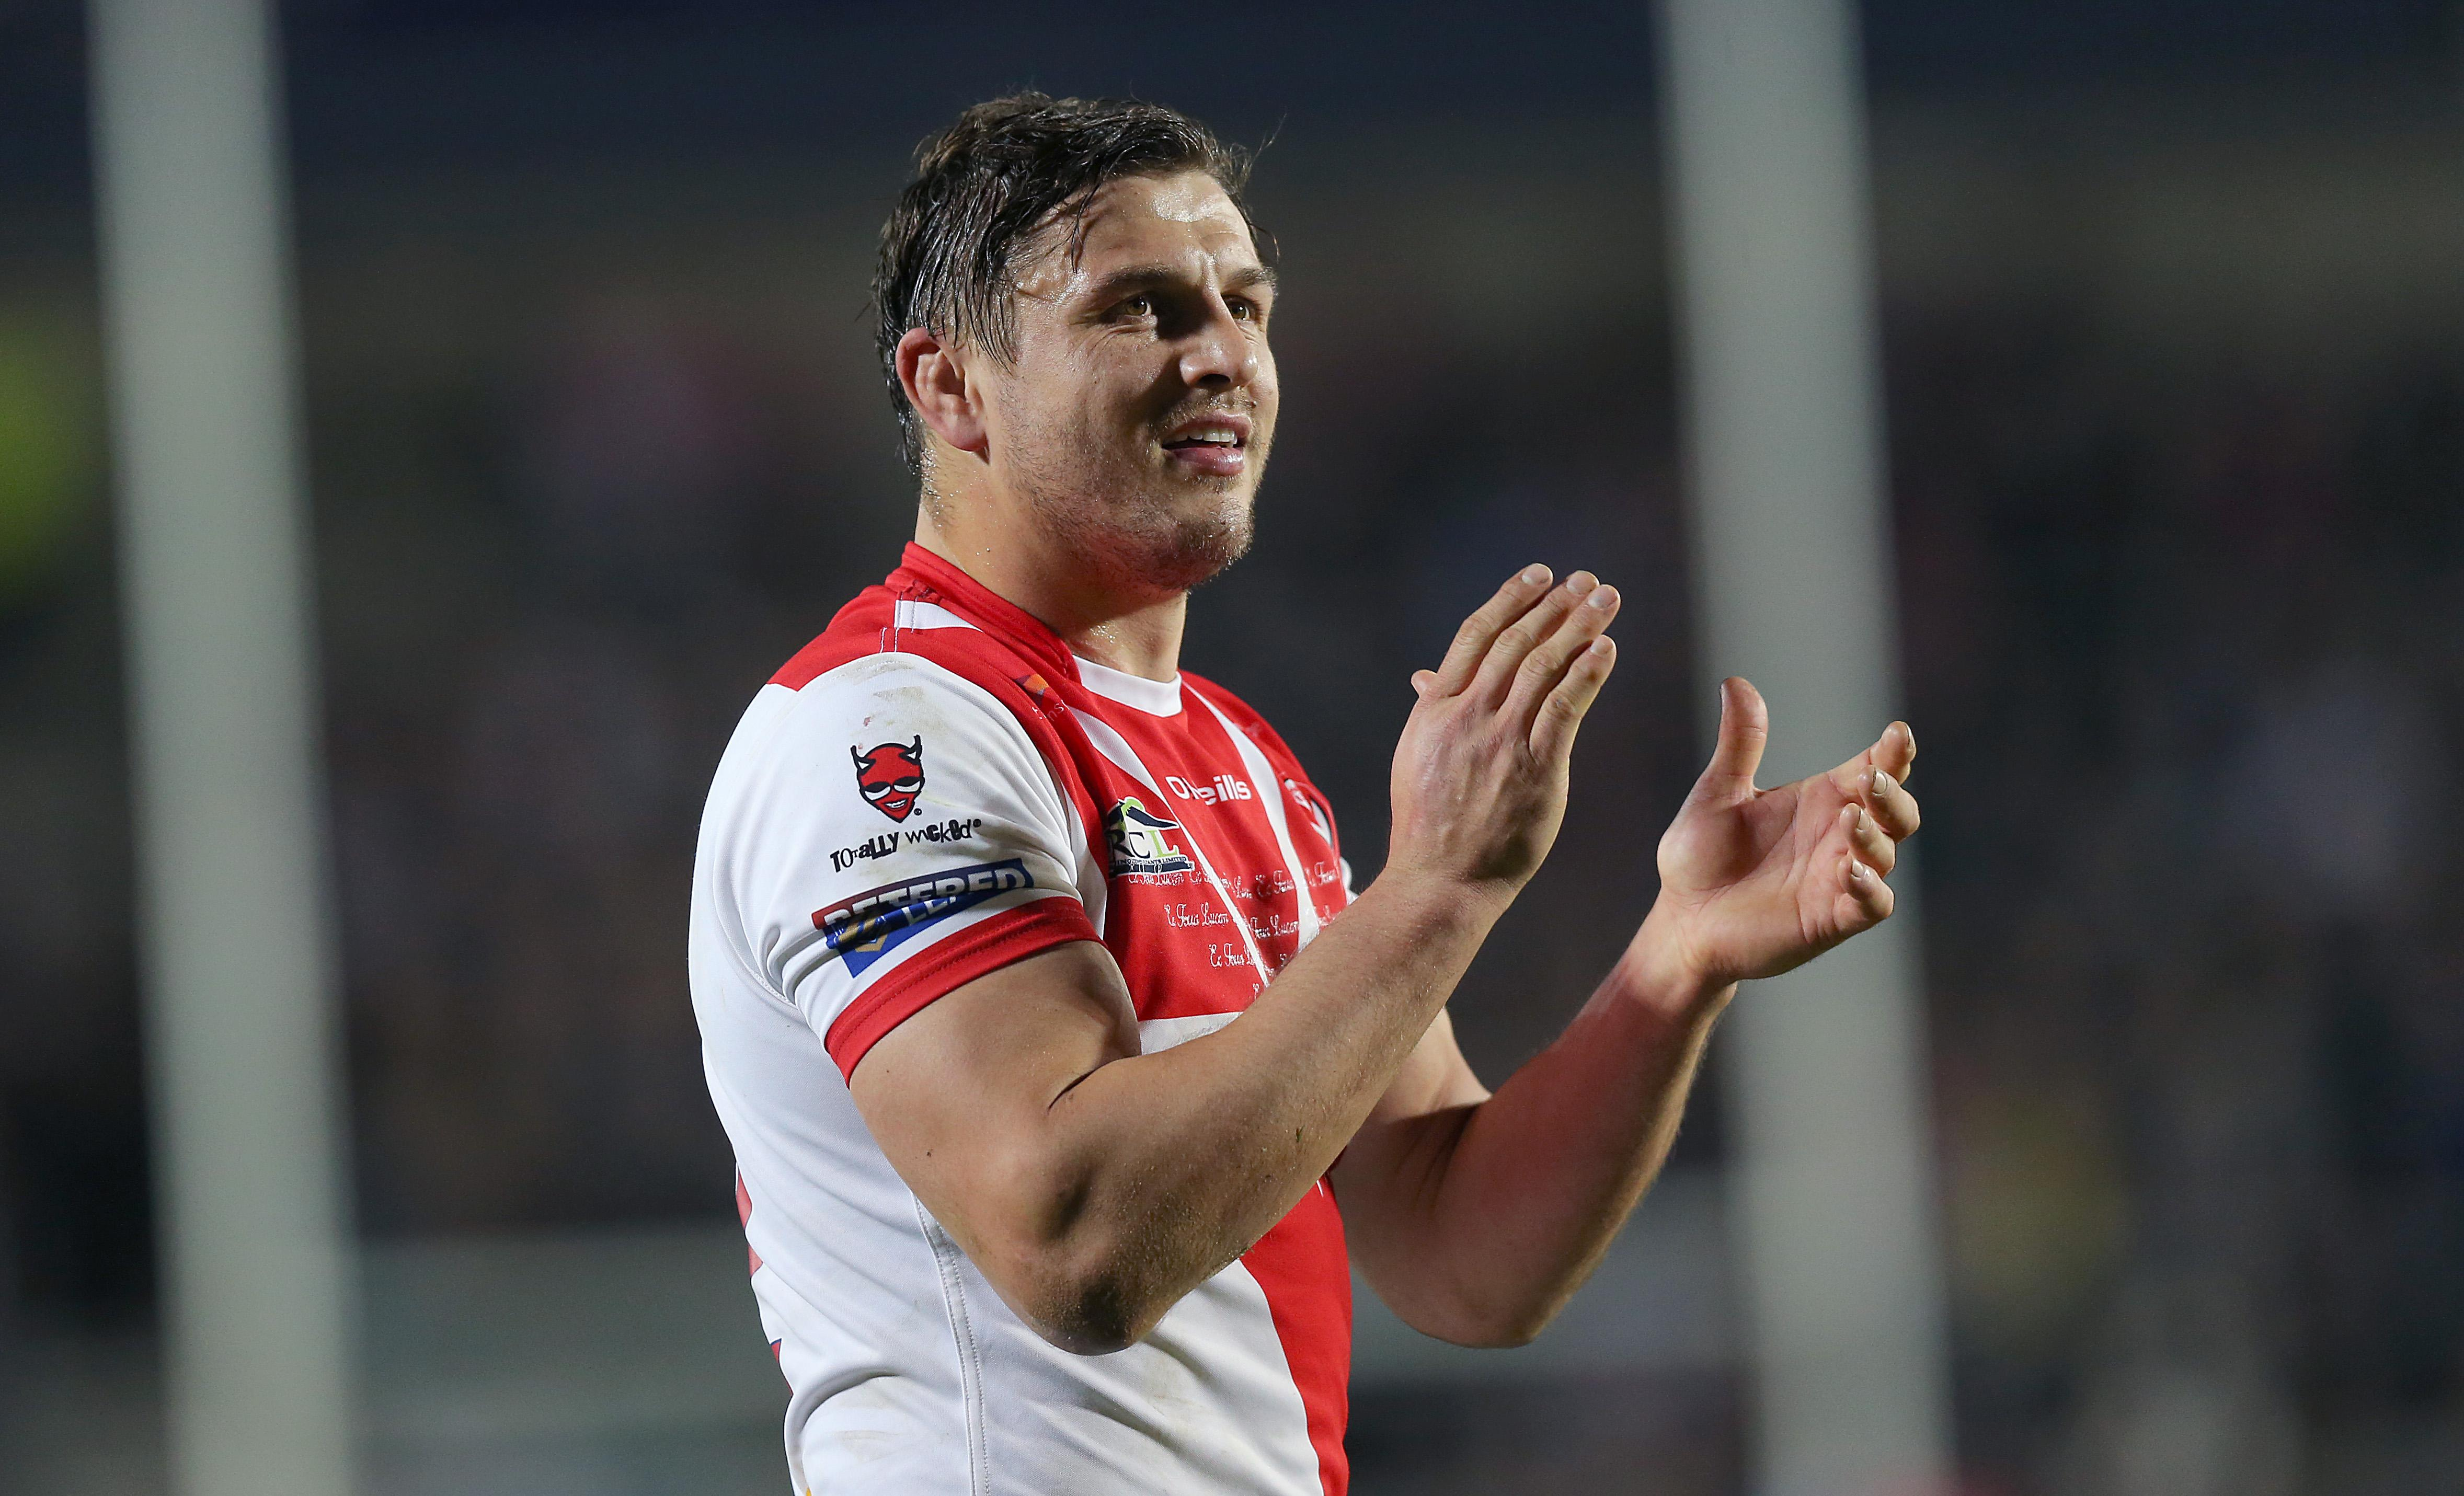 Jon Wilkin will leave St Helens at the end of the season after 16 years